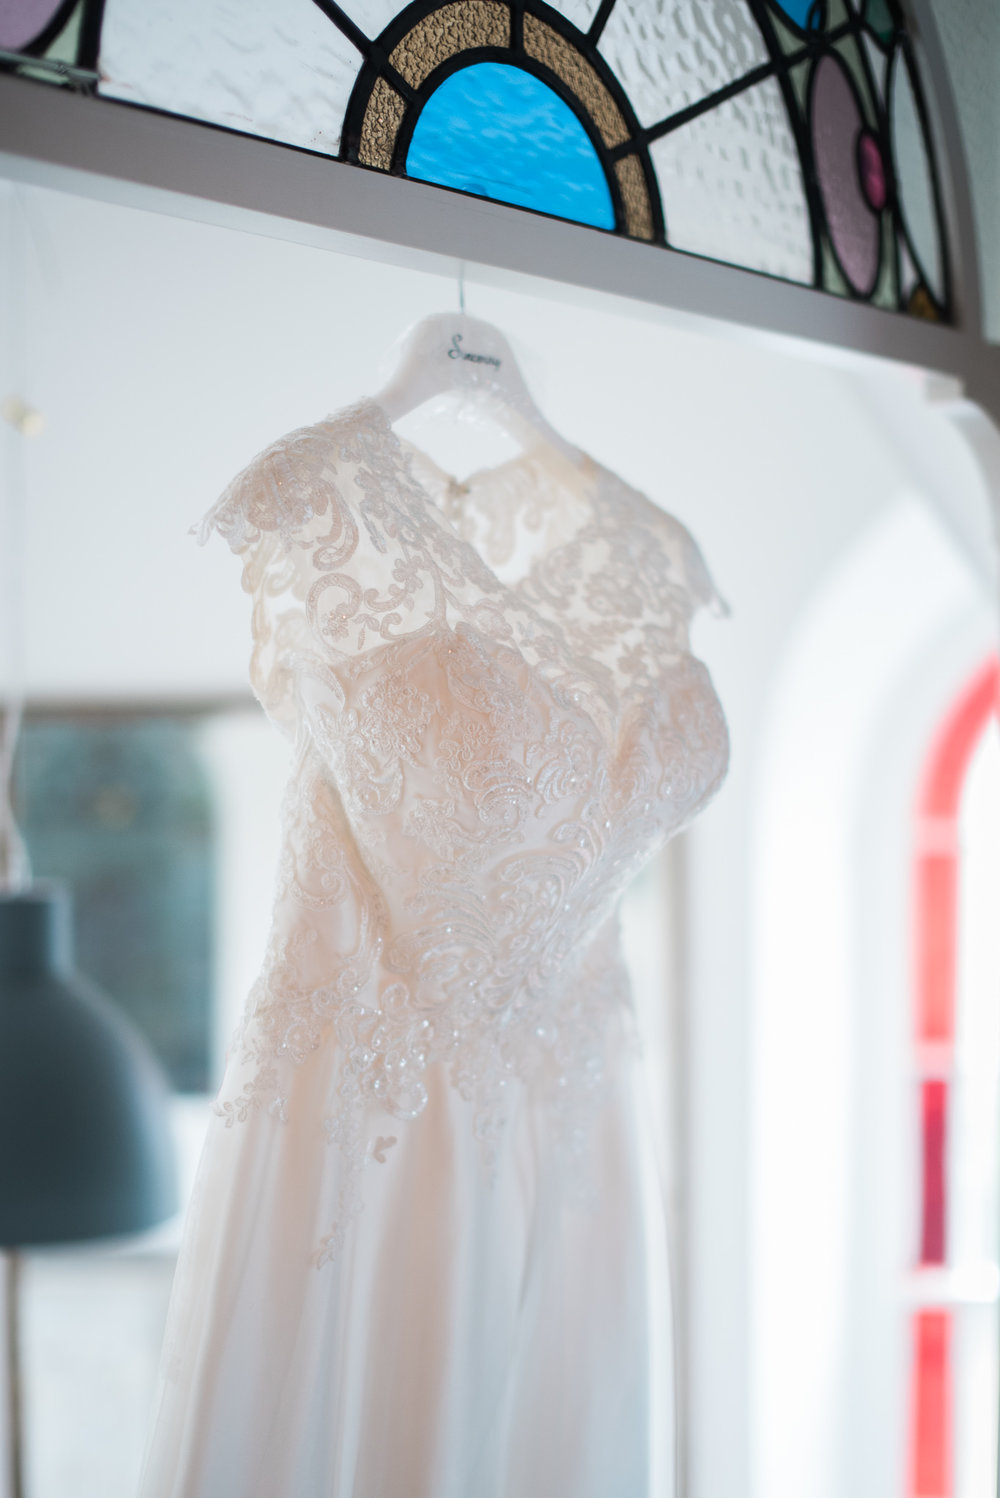 Detailed shot of lace on wedding dress